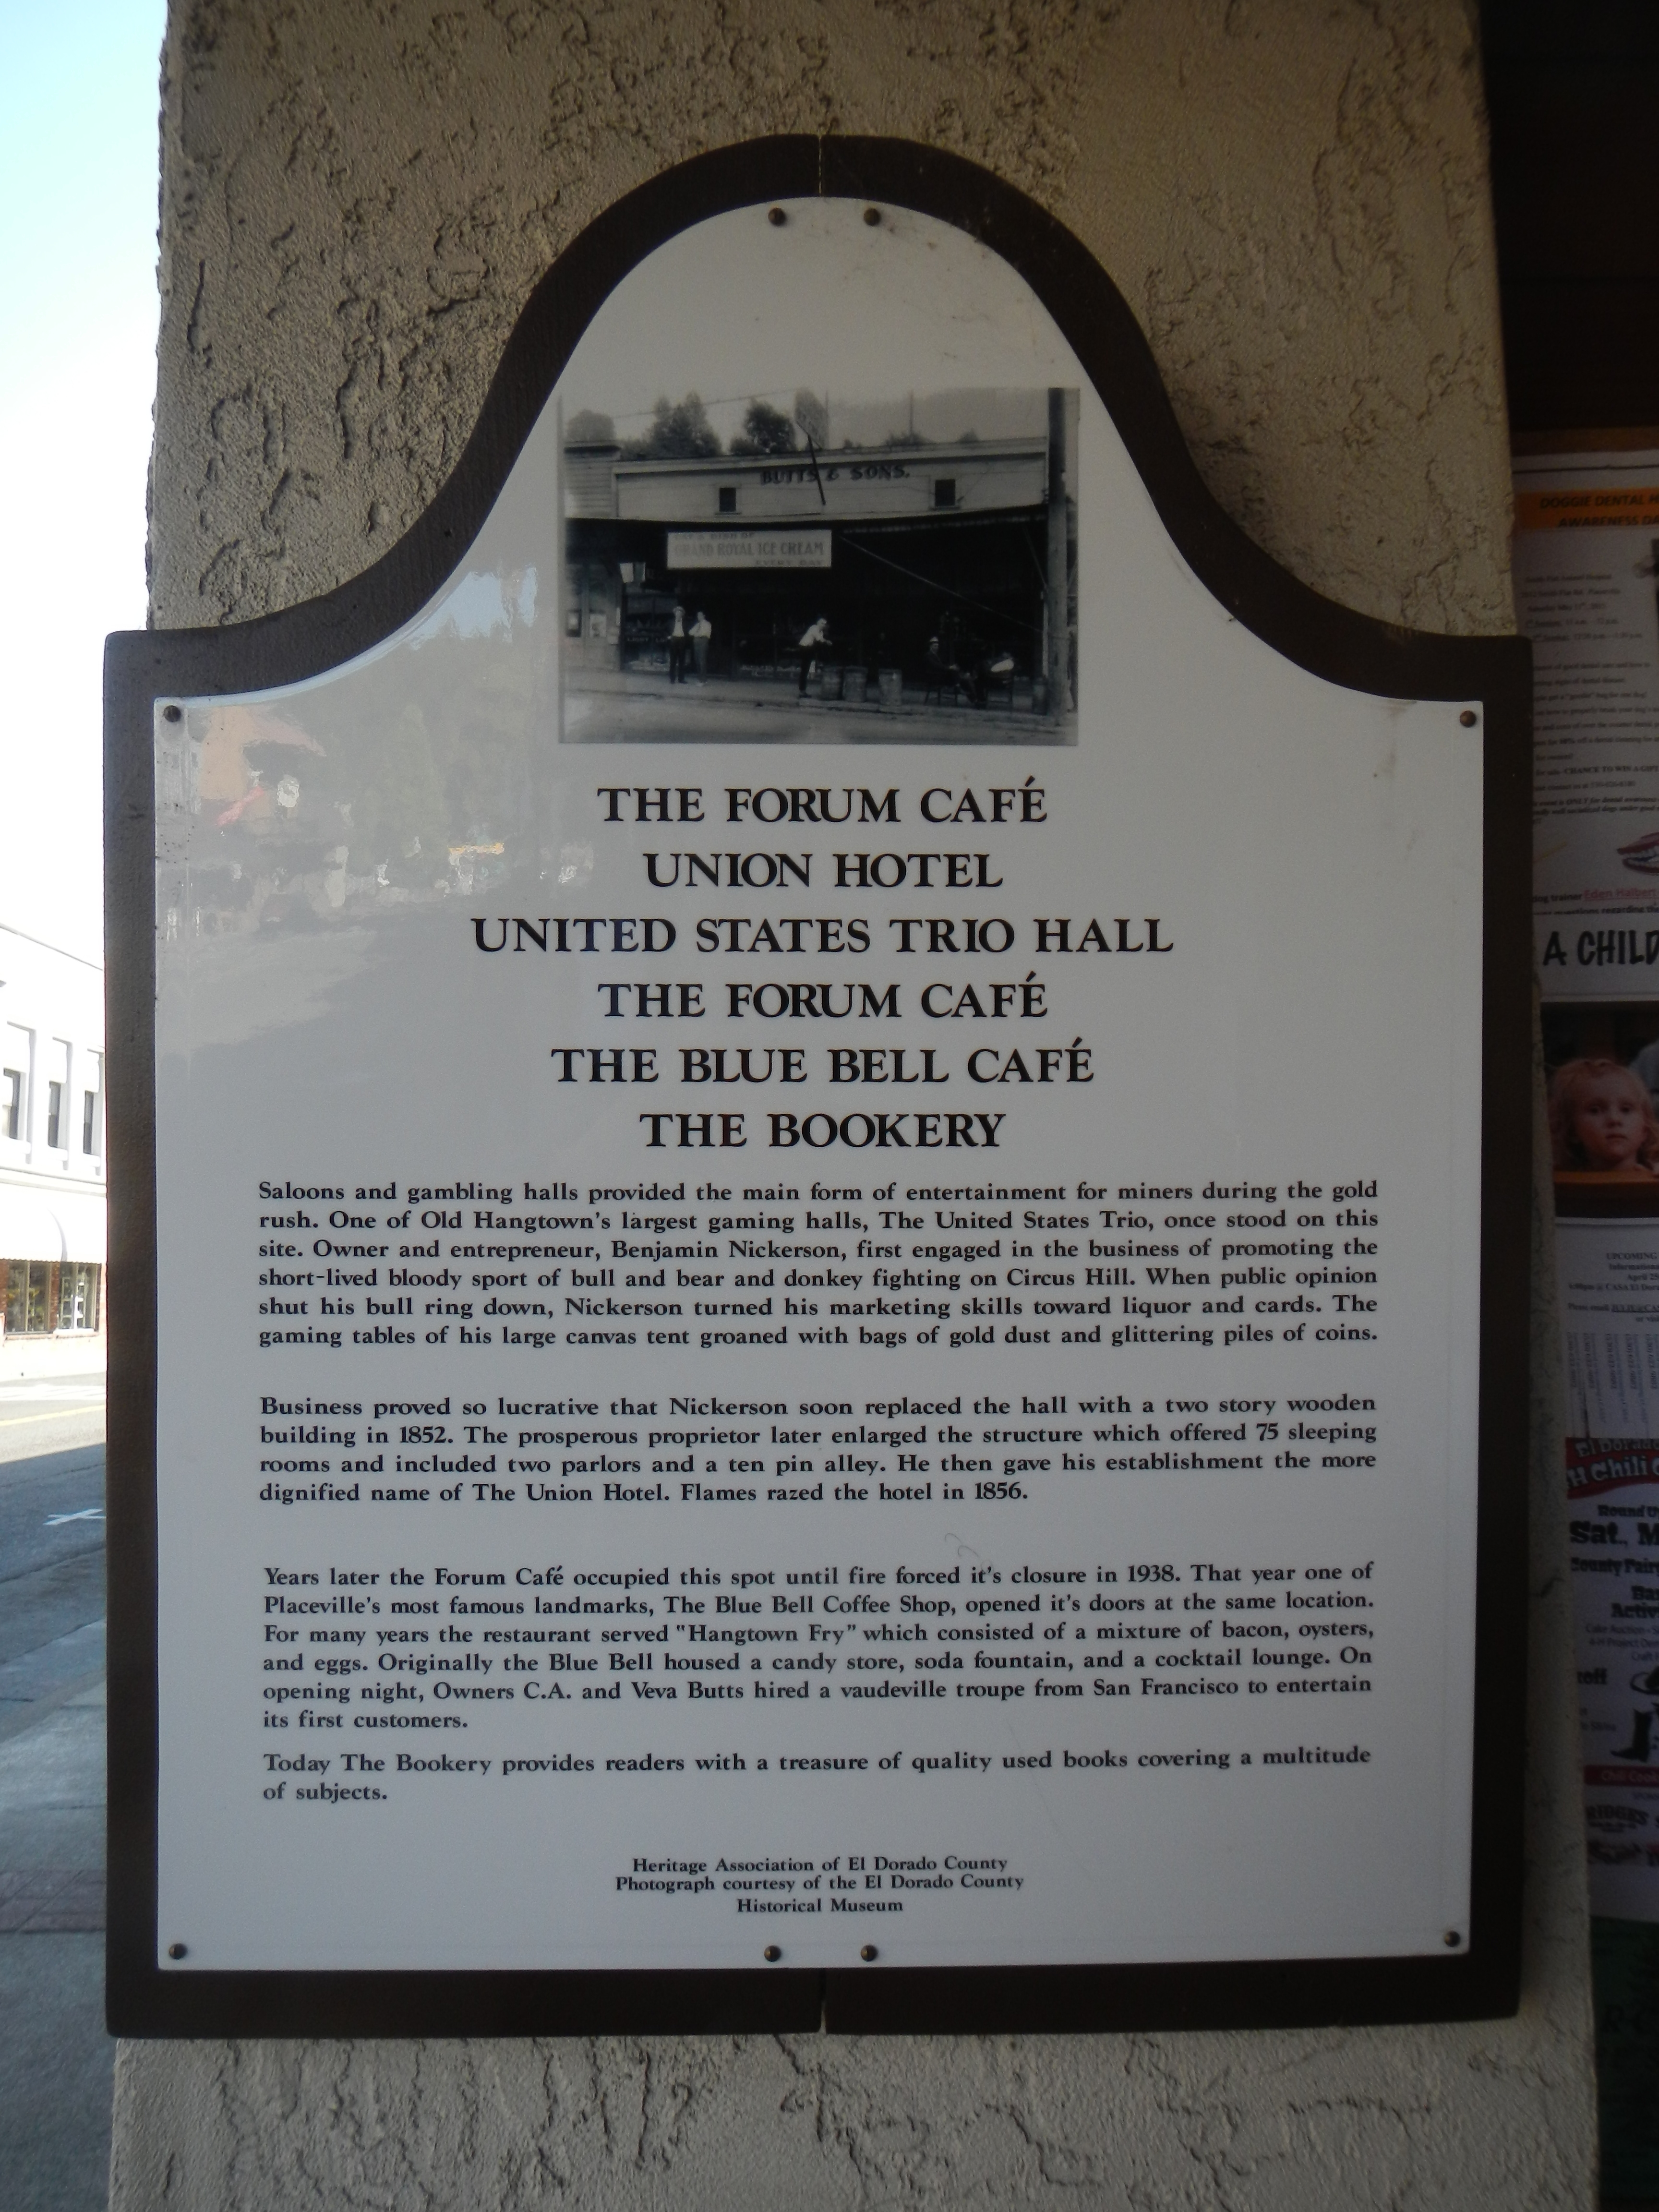 The Forum Café / Union Hotel / United States Trio Hall / The Forum Café / The Blue Bell Café Marker